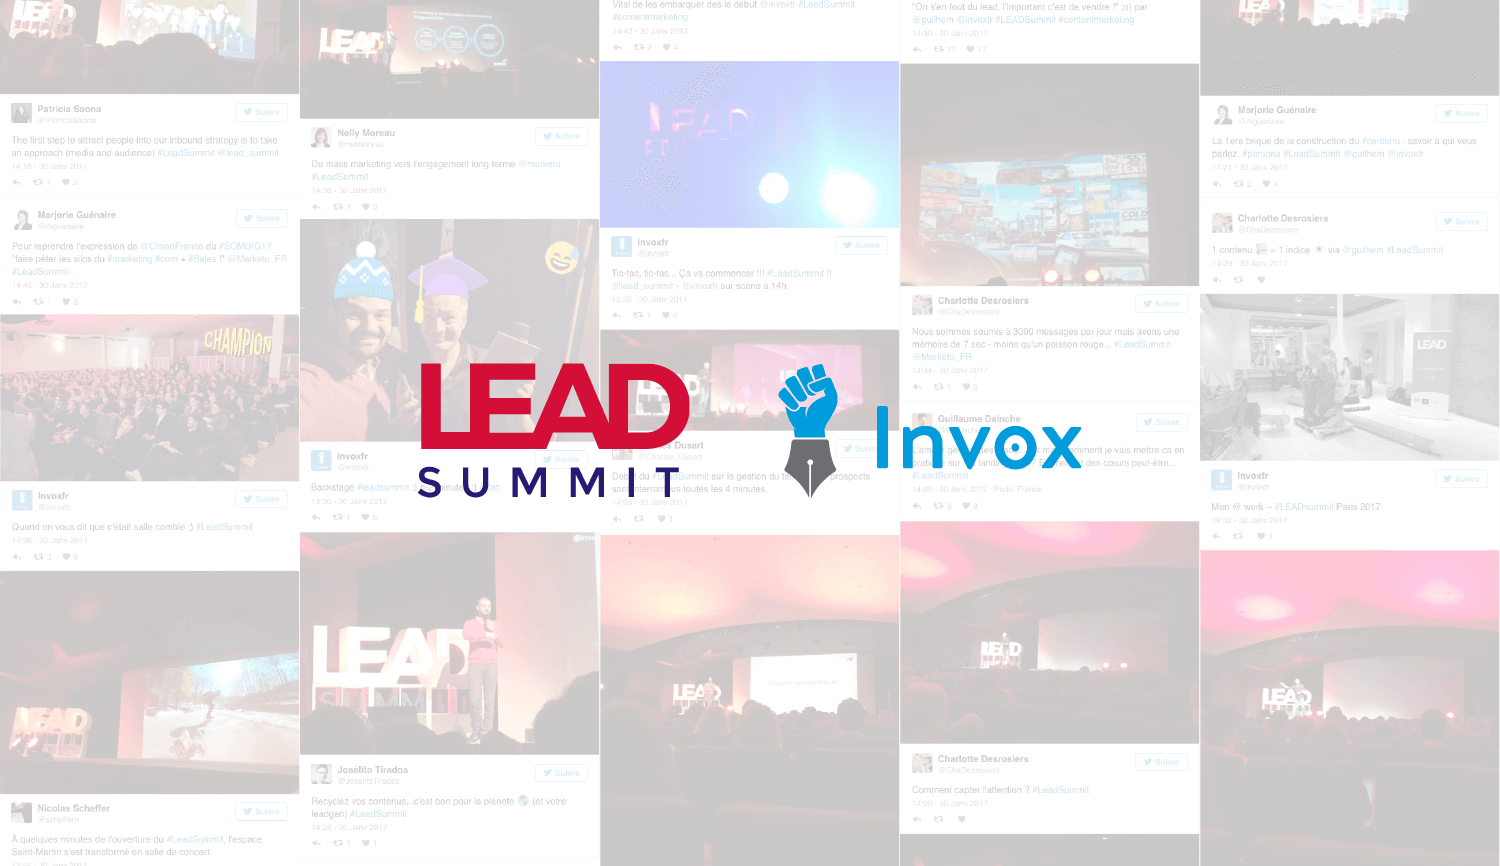 LEAD summit 2017 marketing